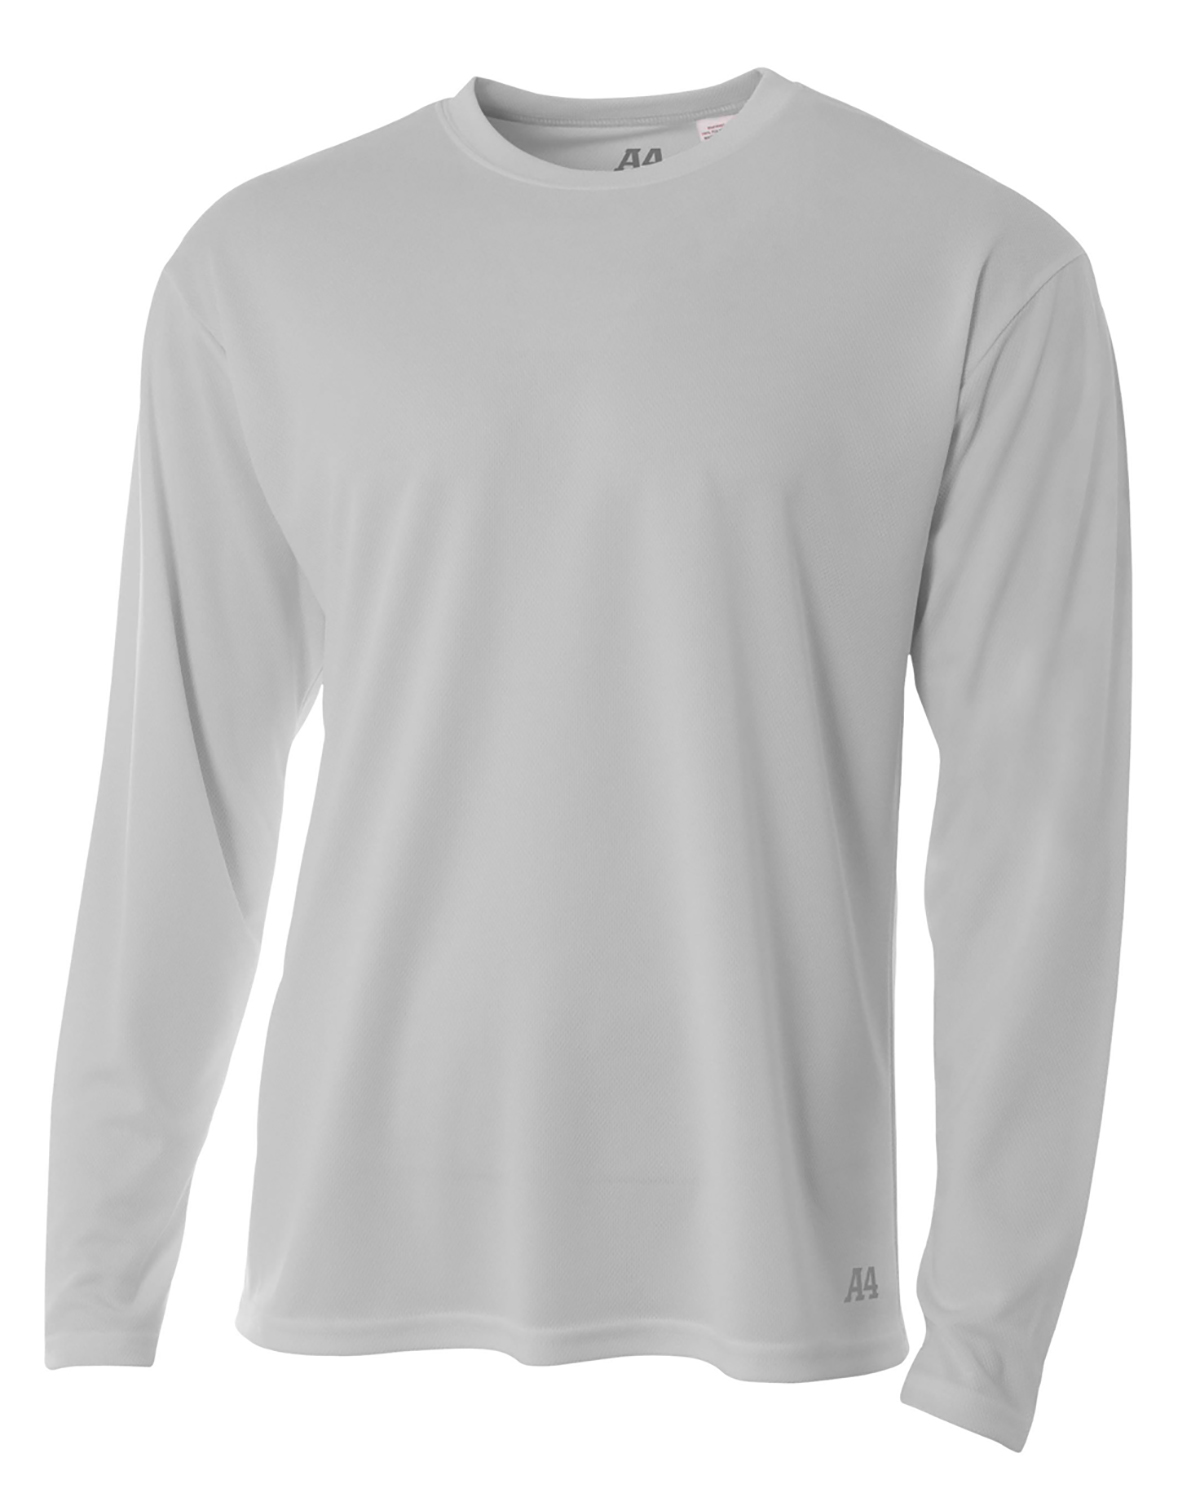 A4 Drop Ship N3253 - Men's Long Sleeve Crew Birds Eye ...